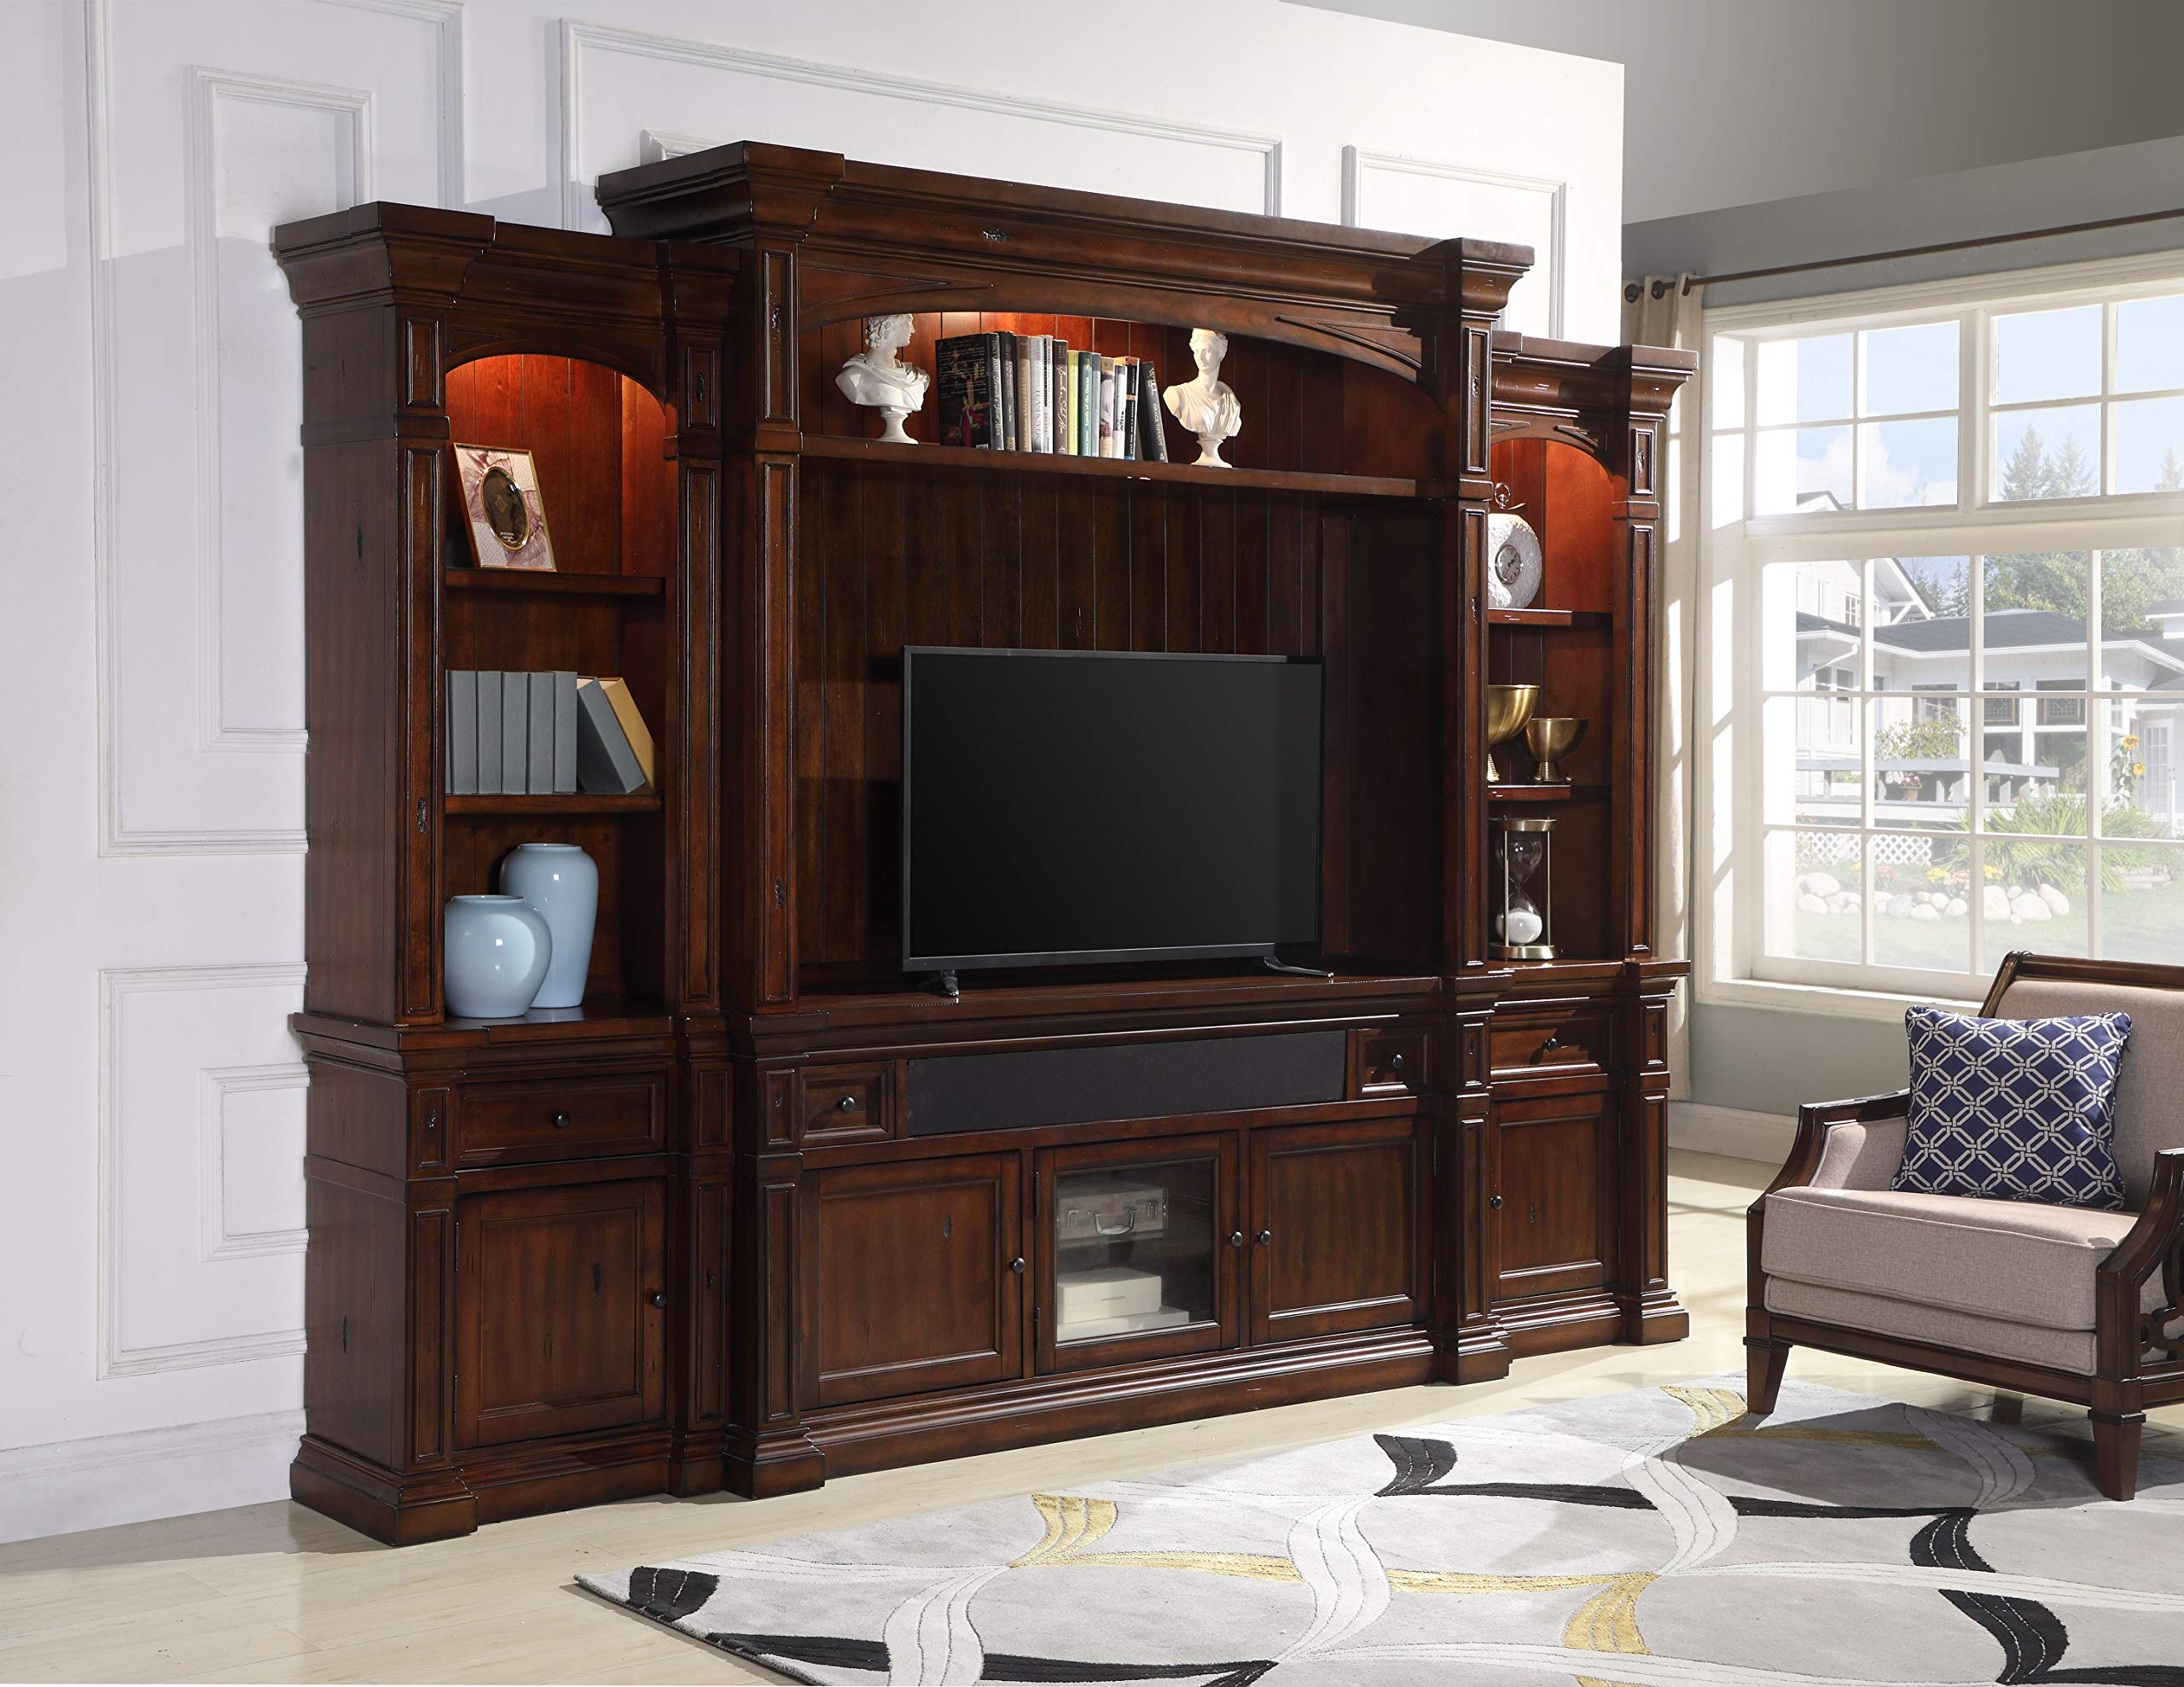 4 Pc Tv Entertainment Center with Built in Speakers, Lights, Dark Cherry- 65'' by Mollai Collection